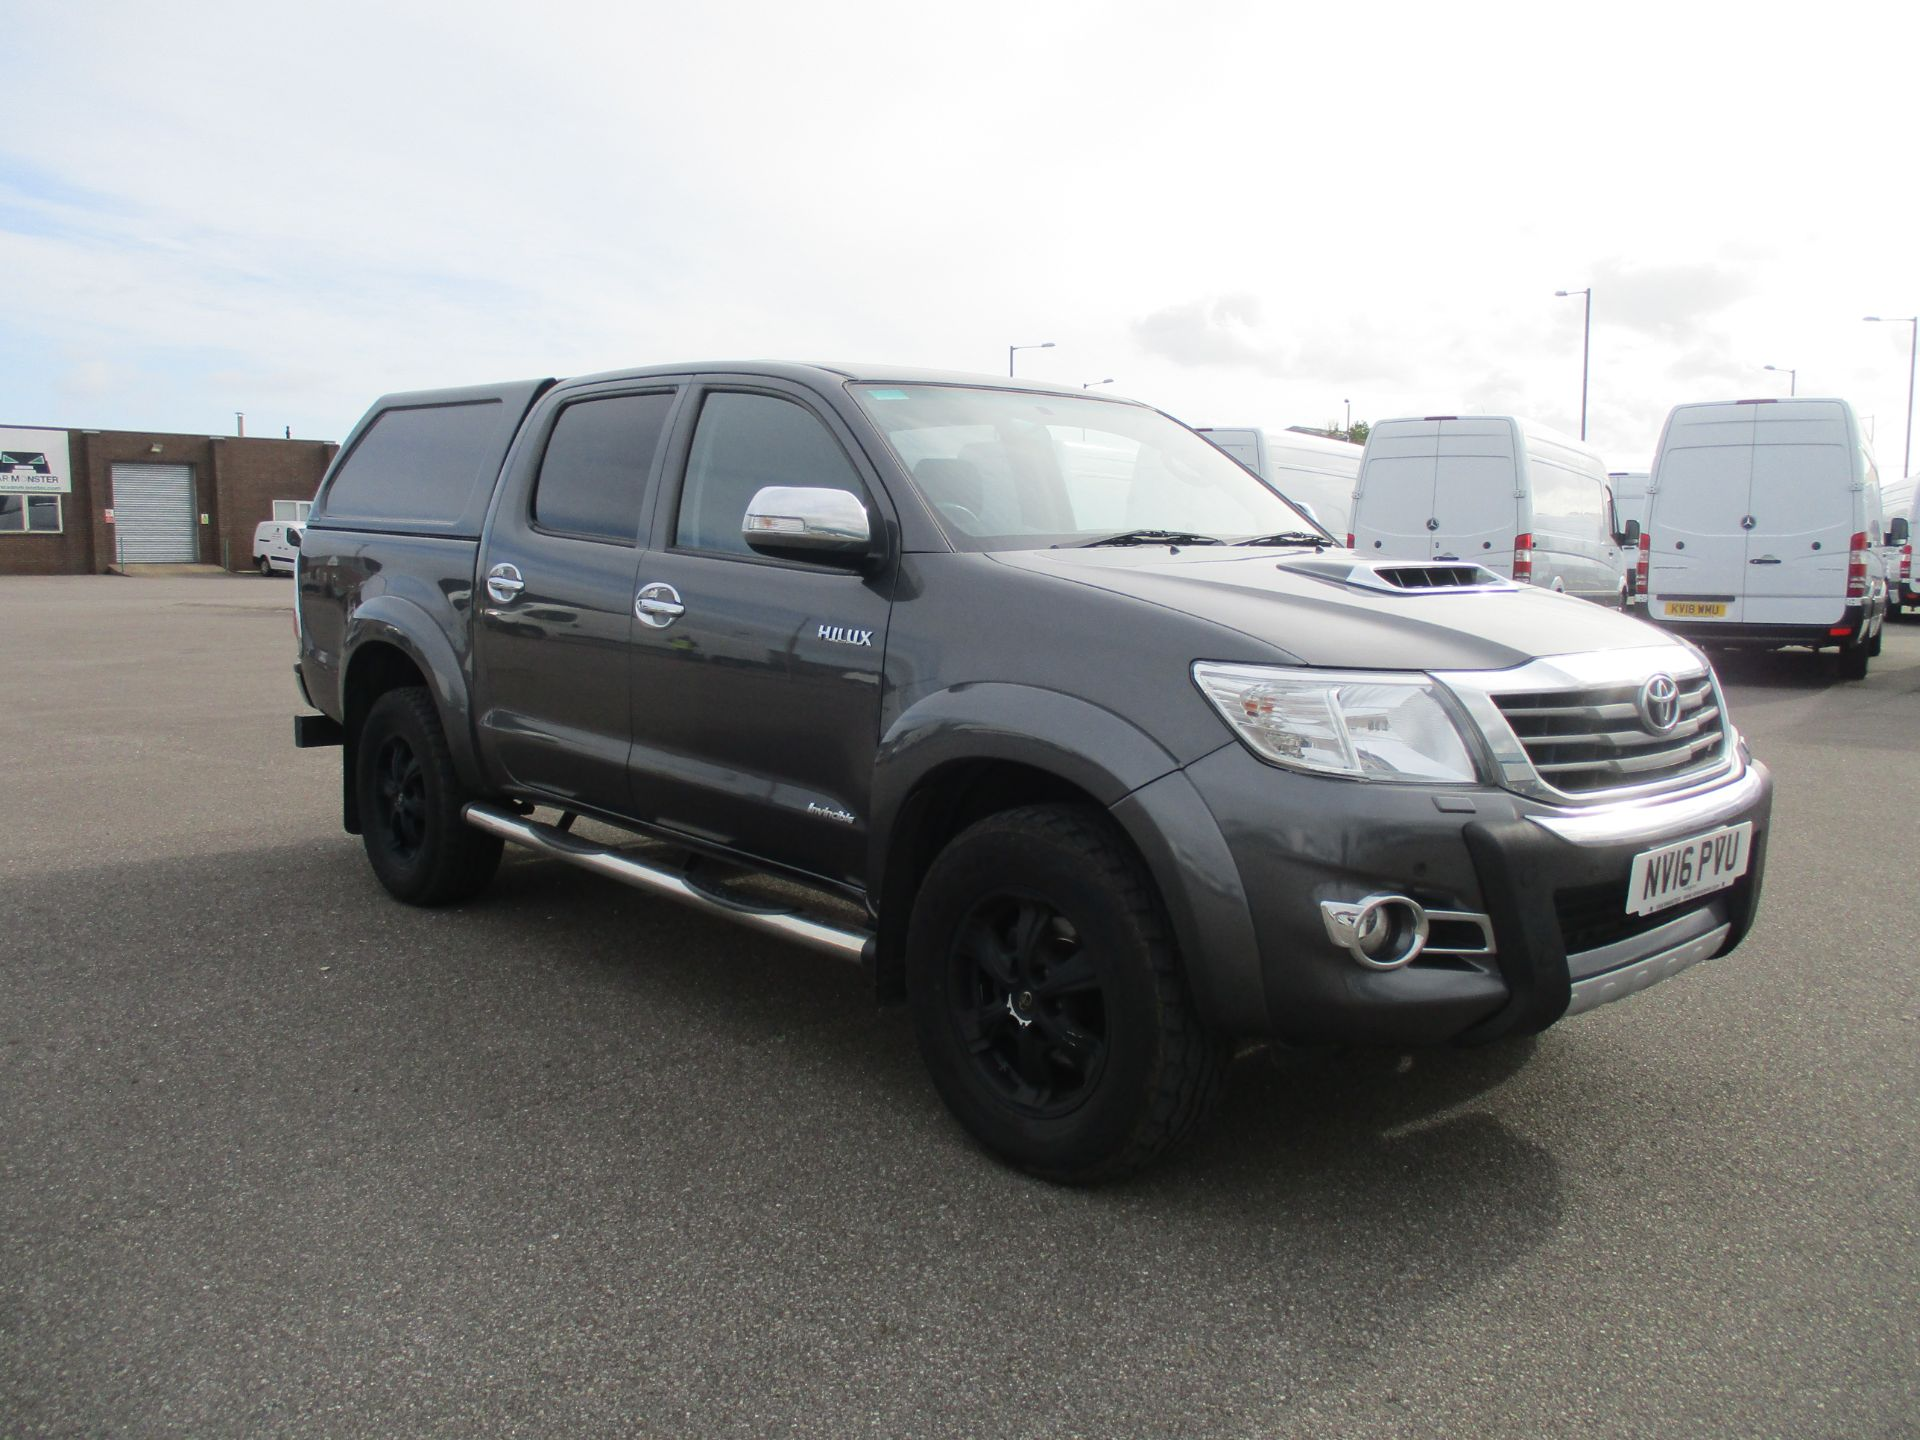 2016 Toyota Hilux DOUBLE CAB PICK UP 3.0 4WD D-4D 171 INVINCIBLE X AUTO. SAT NAV. AIR CON (NV16PVU)